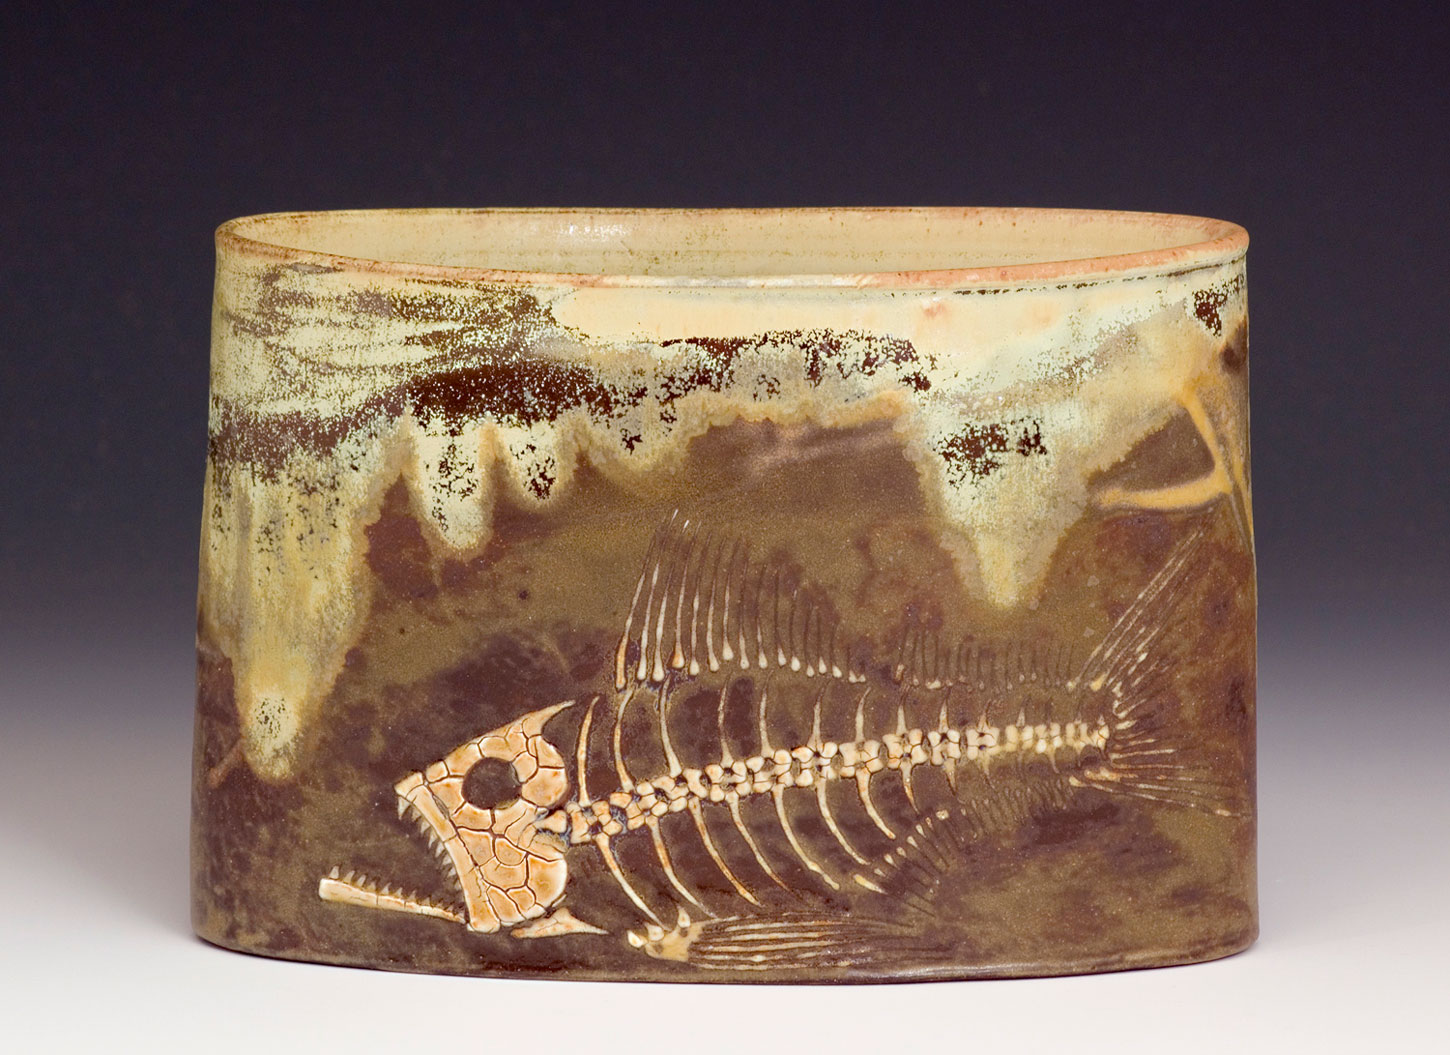 Fossil-Fish-Art-Pottery-Oval-Vase-Bruce-Gholson.jpg